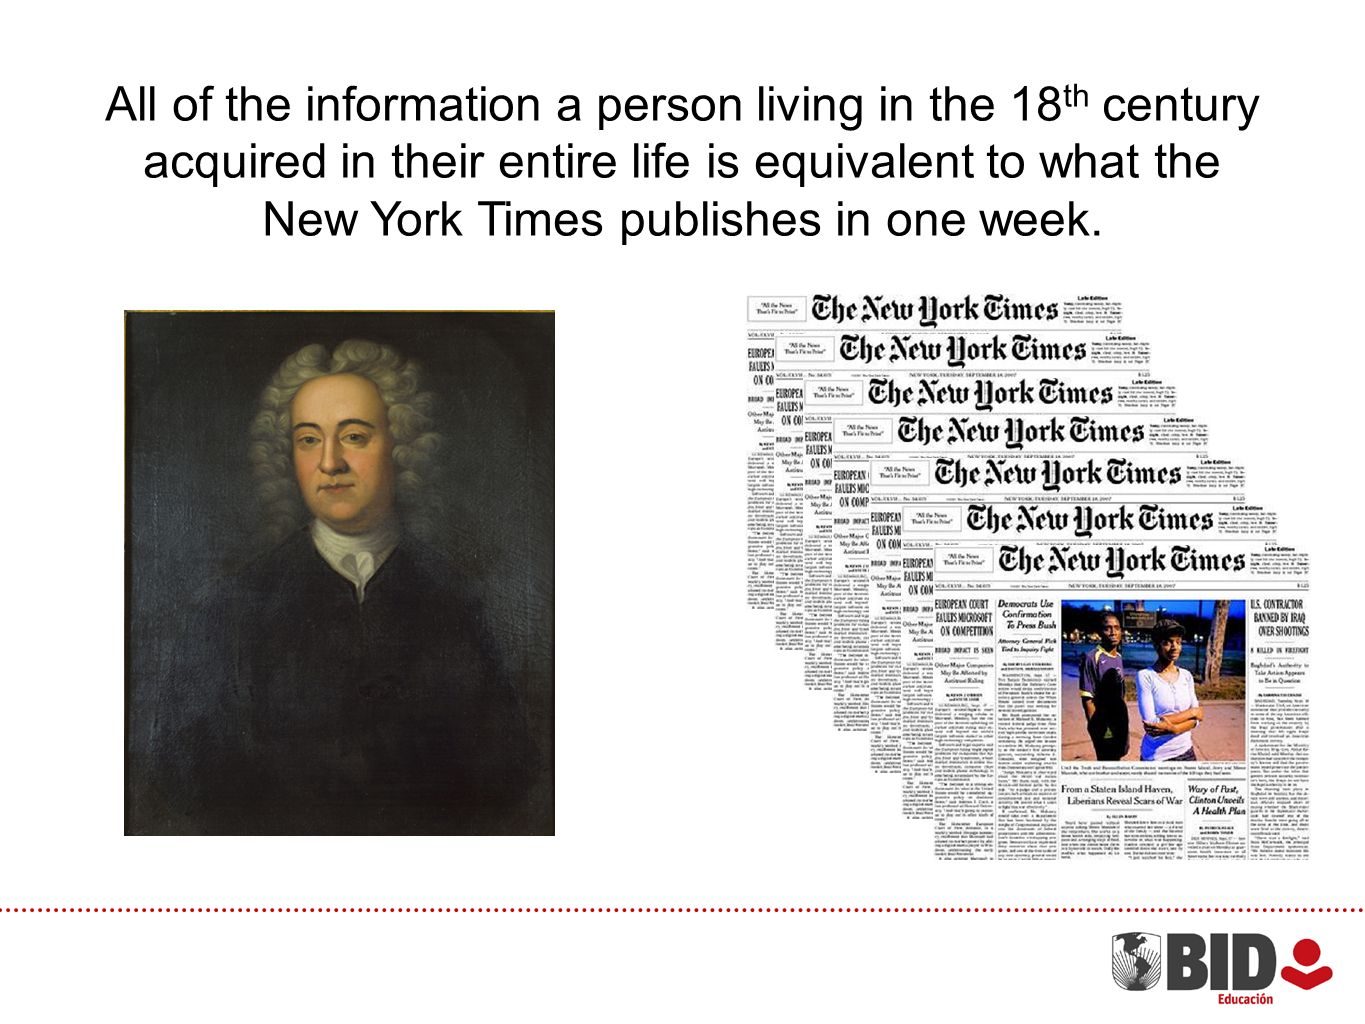 All of the information a person living in the 18 th century acquired in their entire life is equivalent to what the New York Times publishes in one week.